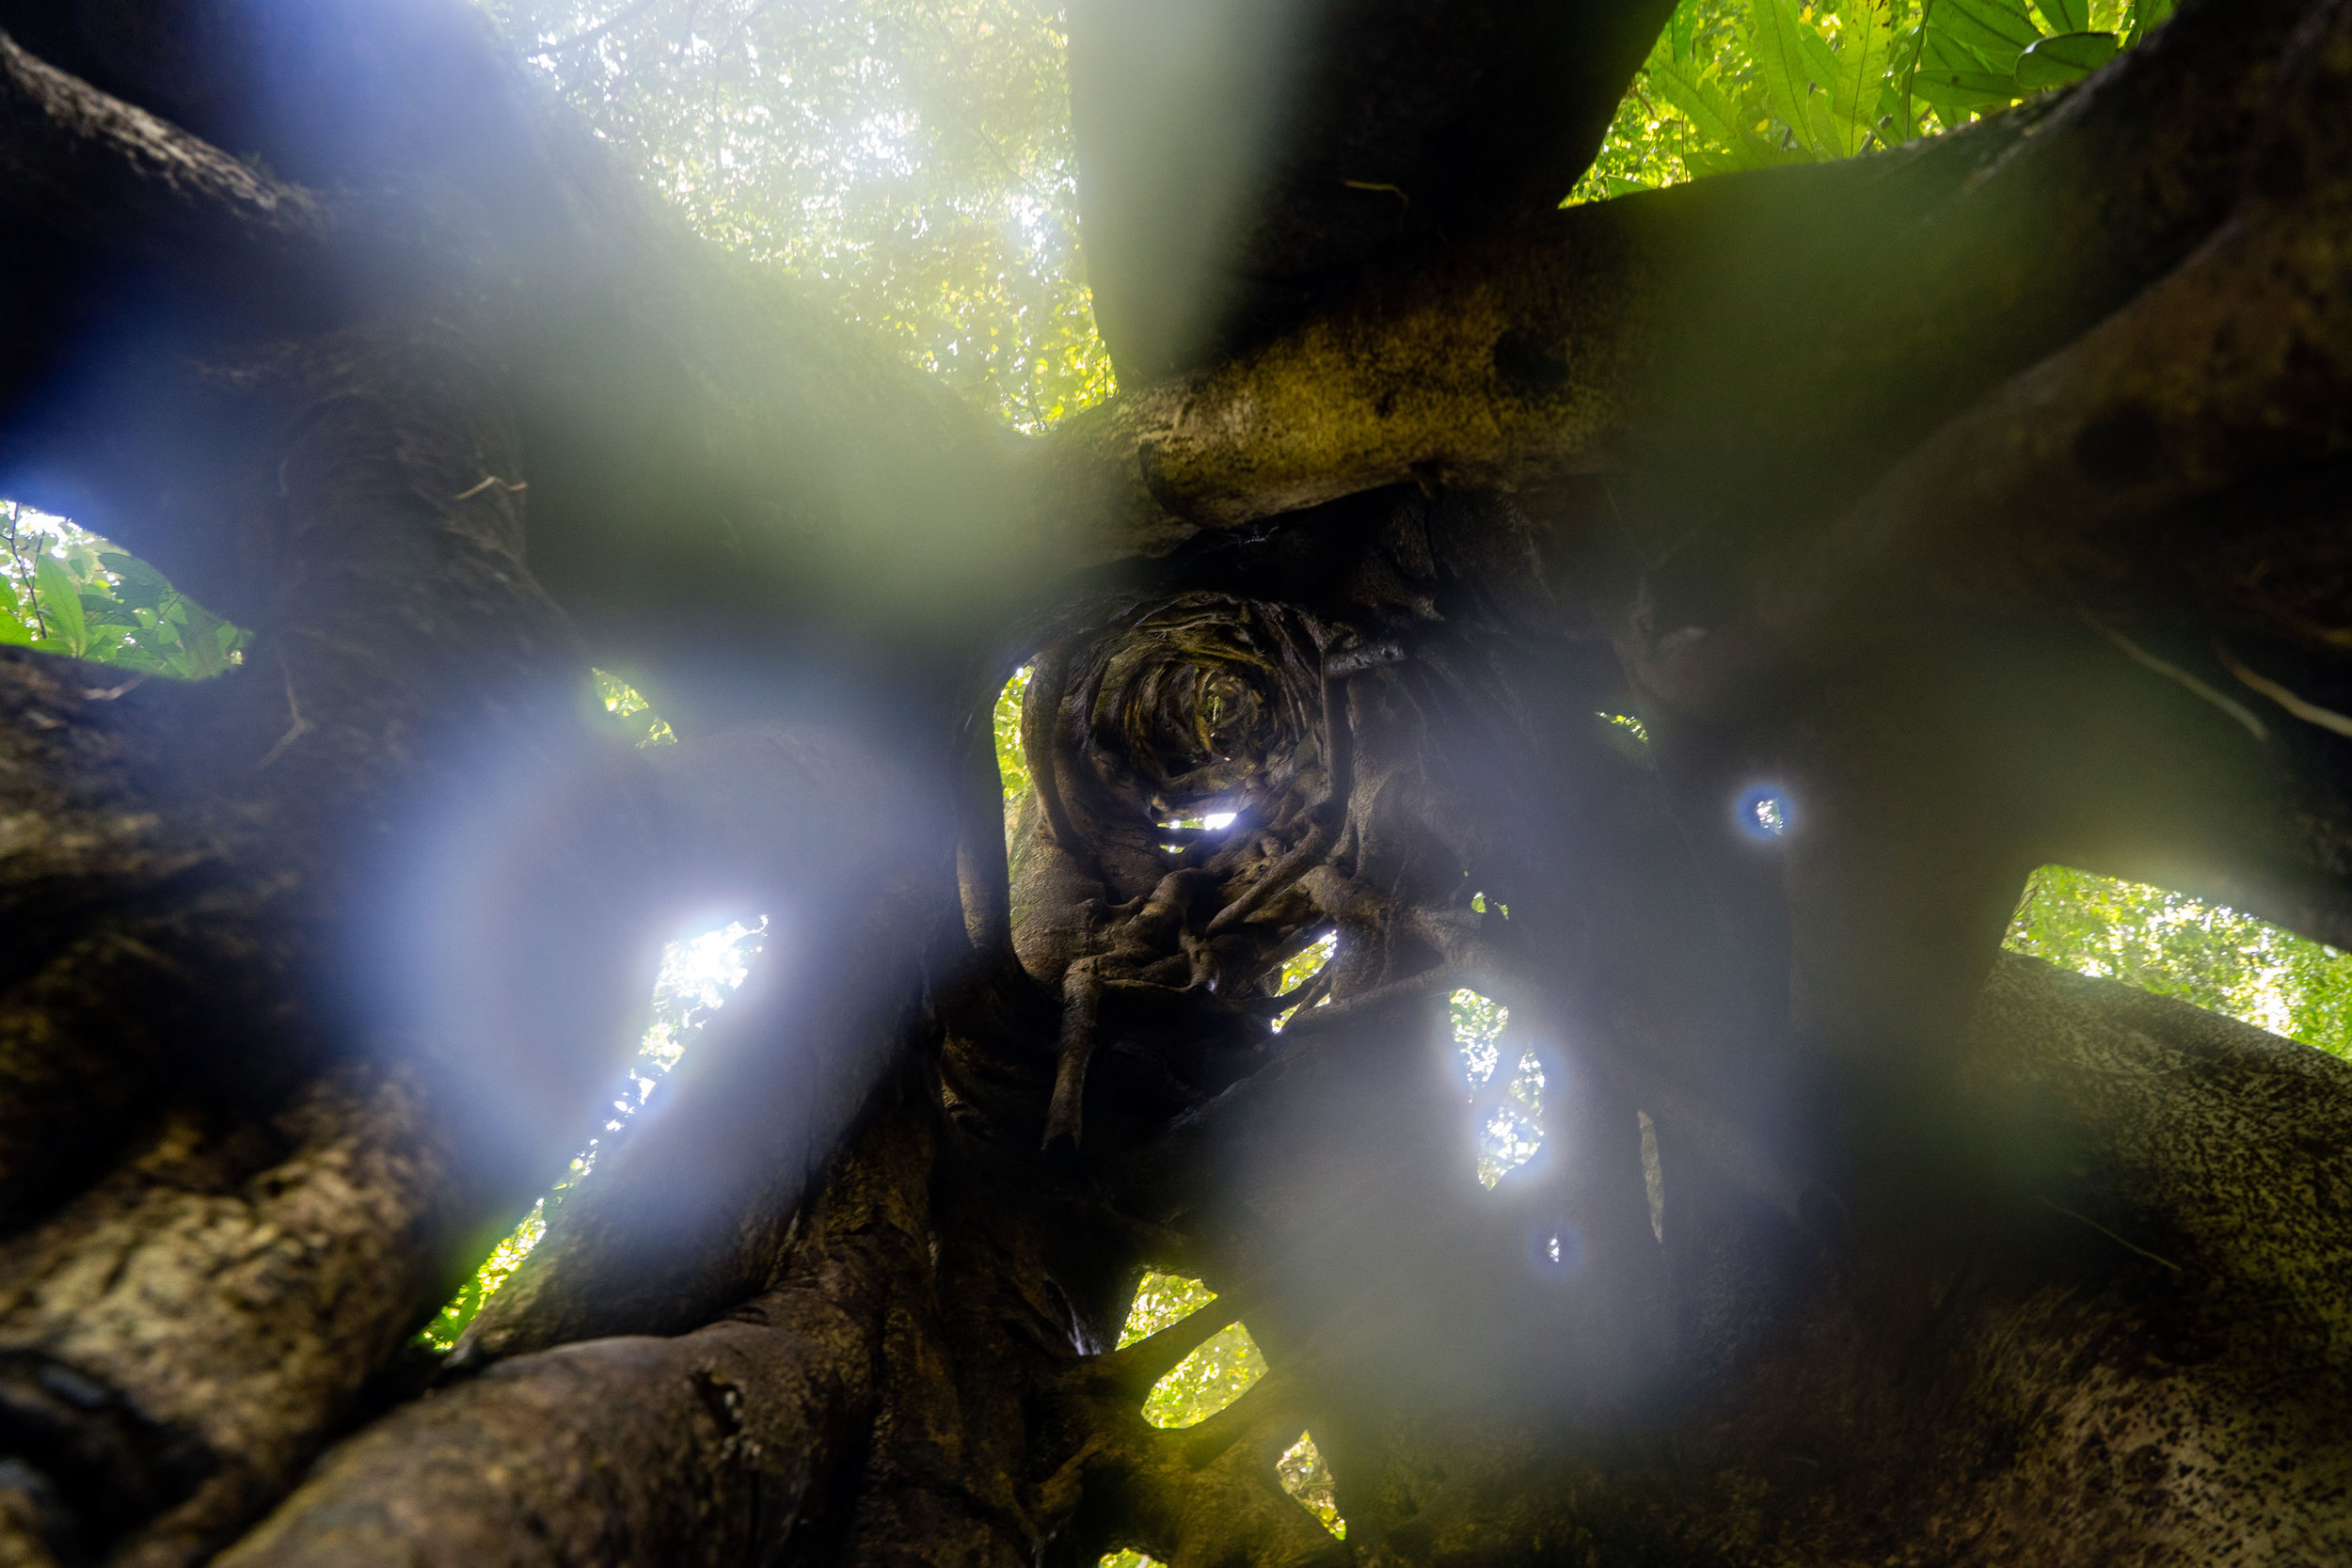 inside-a-rainforest-tree-sumatra-aceh-indonesia-trekking-jungle.jpg